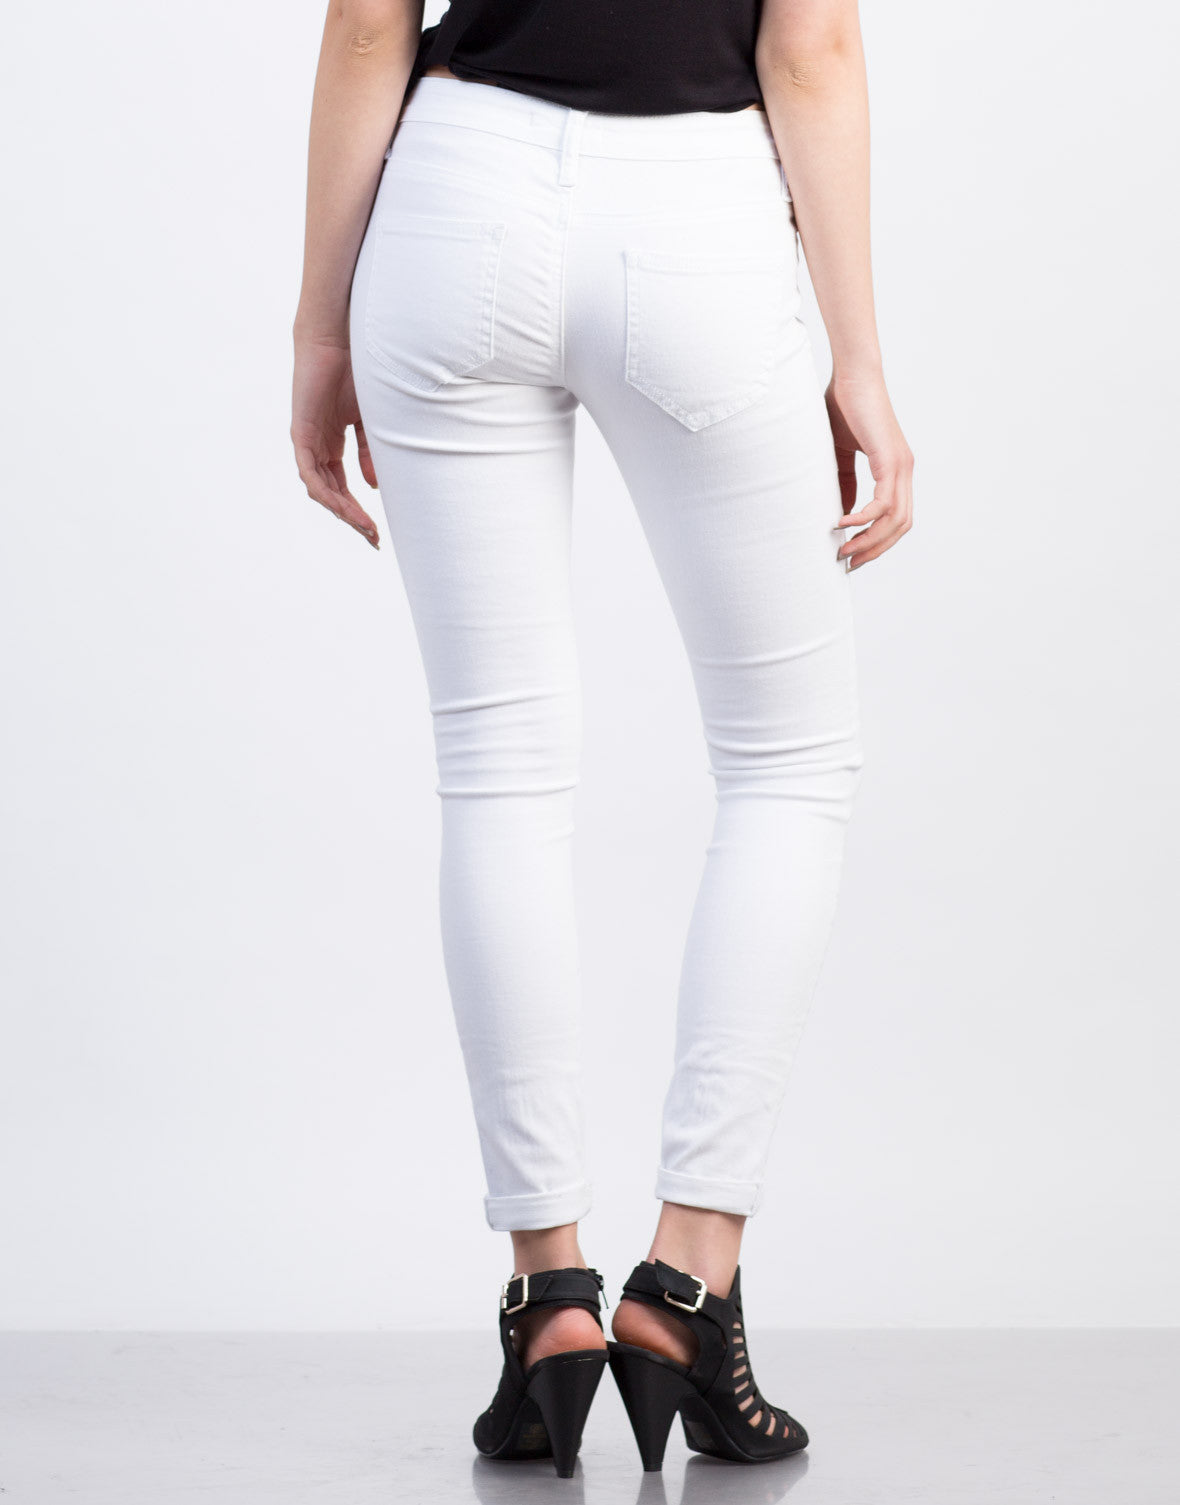 SHOPBOP - White Jeans FASTEST FREE SHIPPING WORLDWIDE on White Jeans & FREE EASY RETURNS.